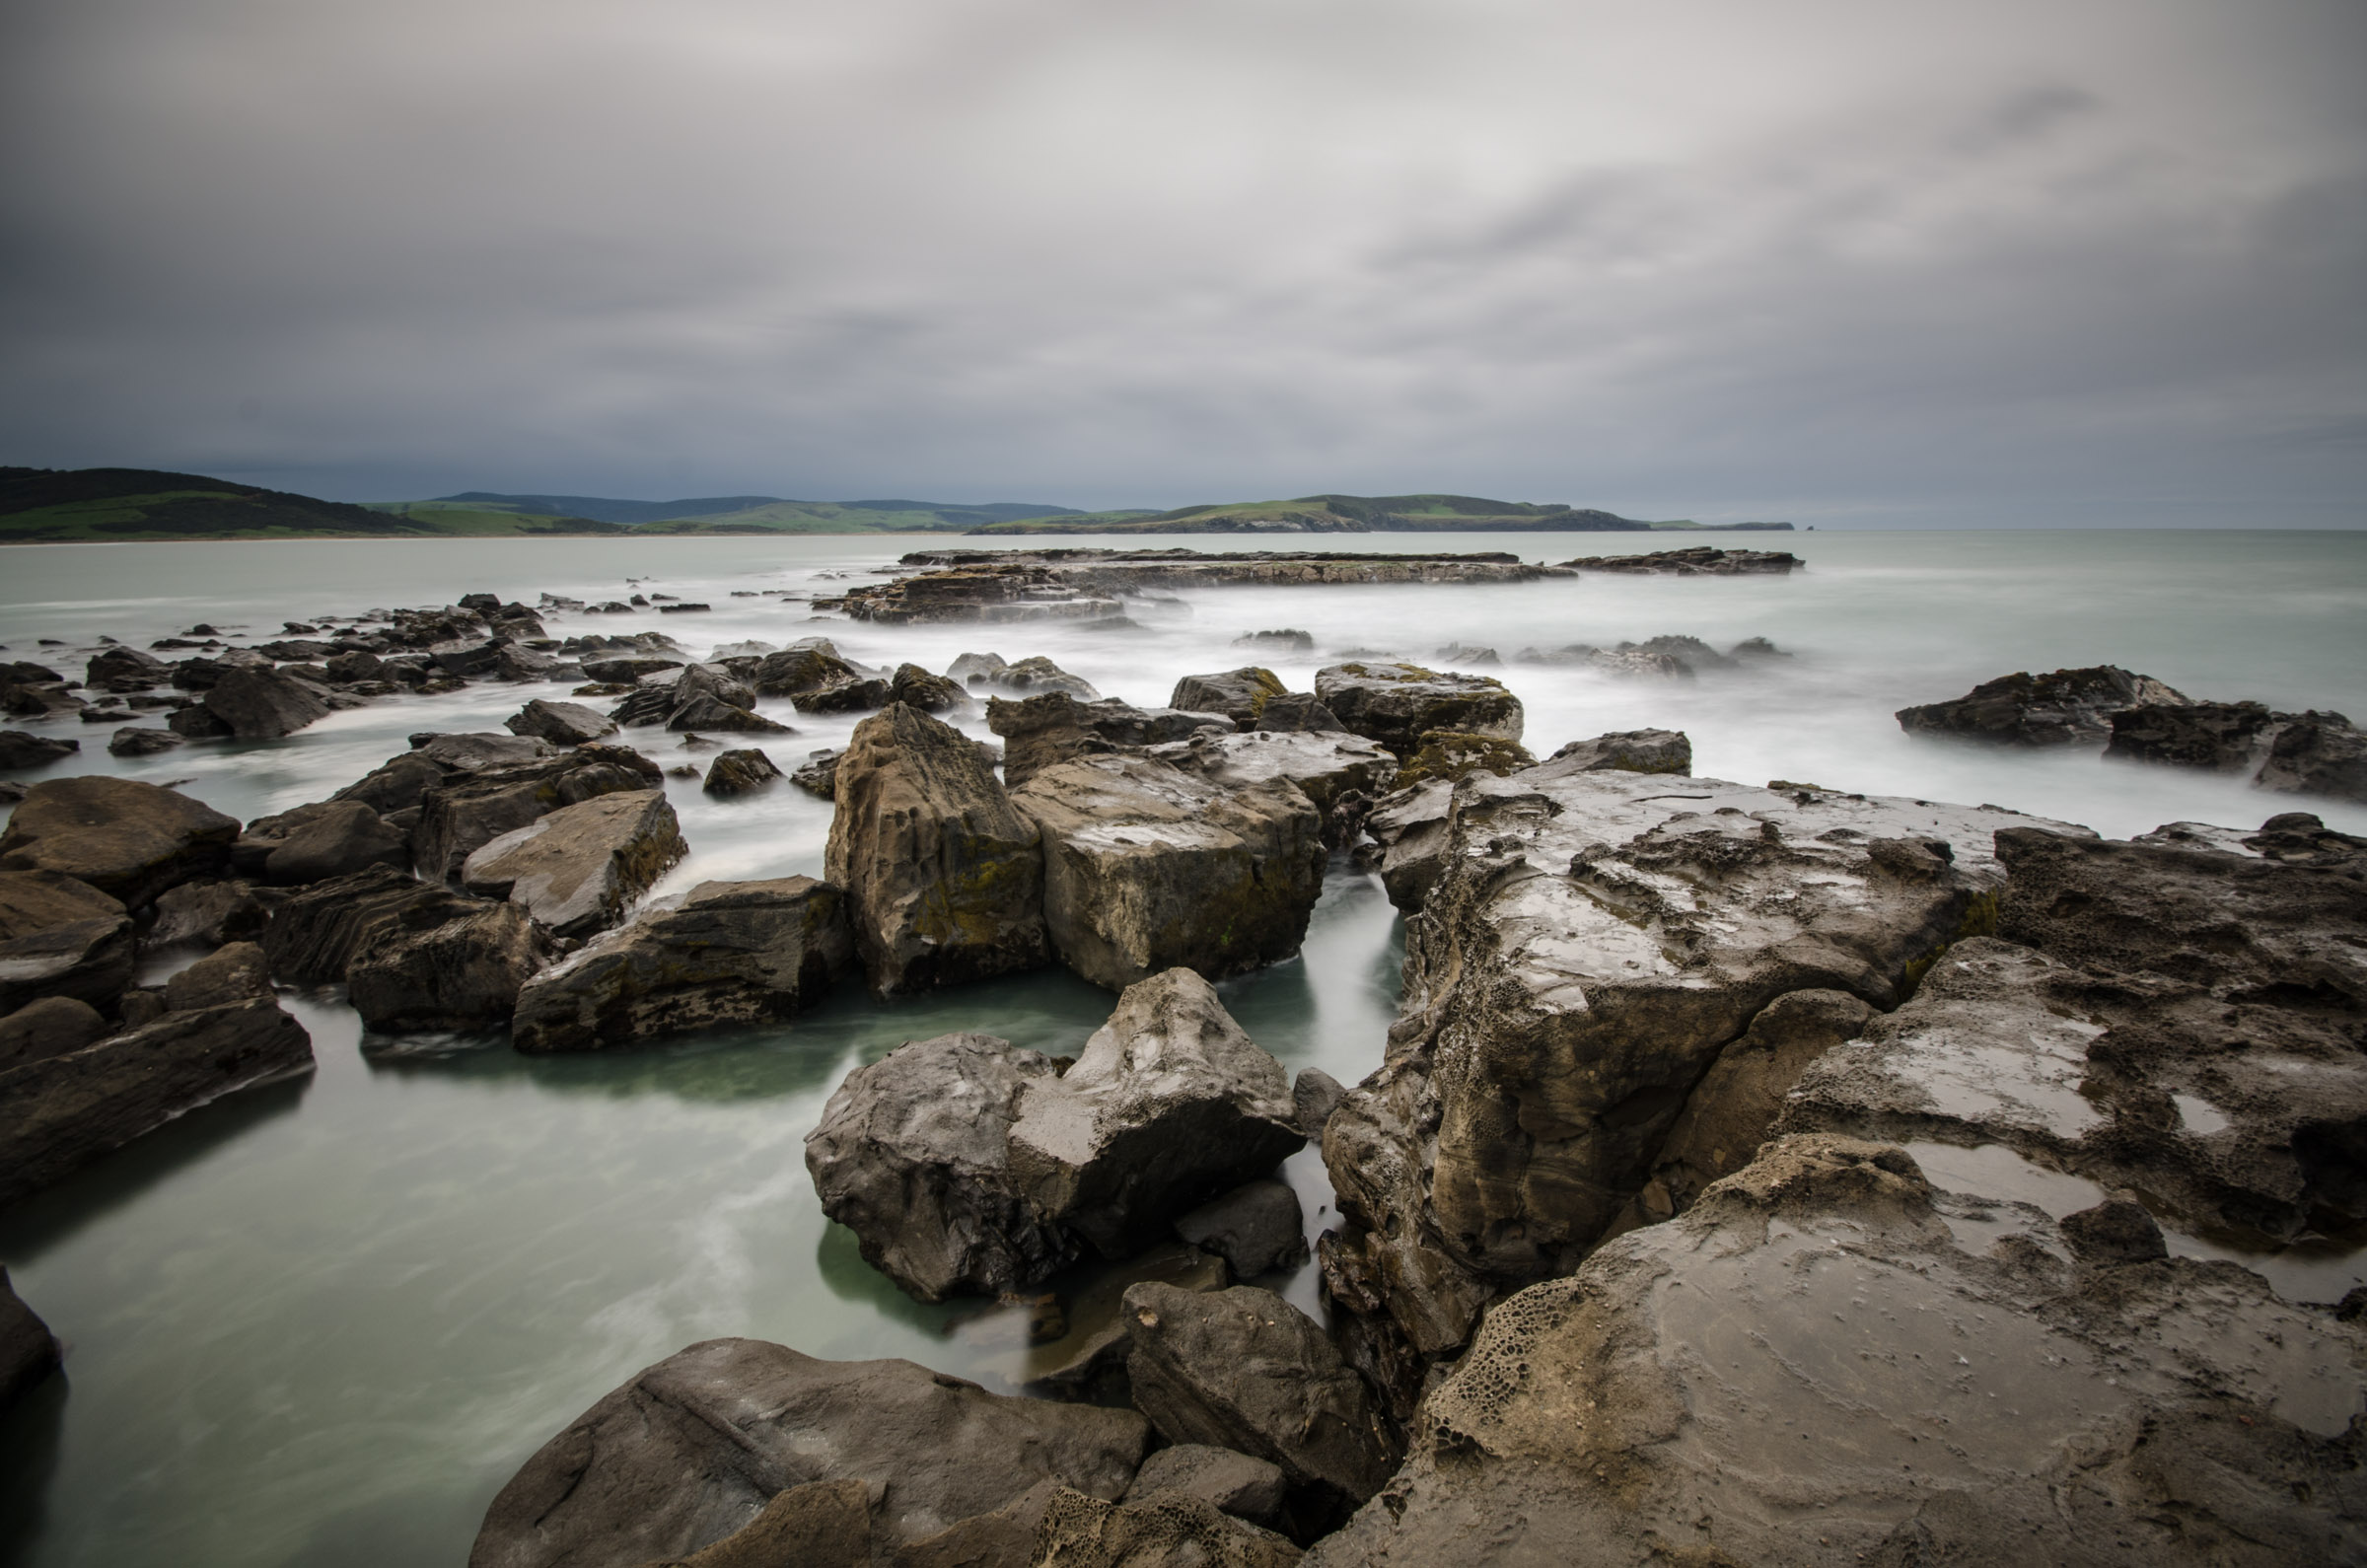 20131018_Catlins-_Timo_096